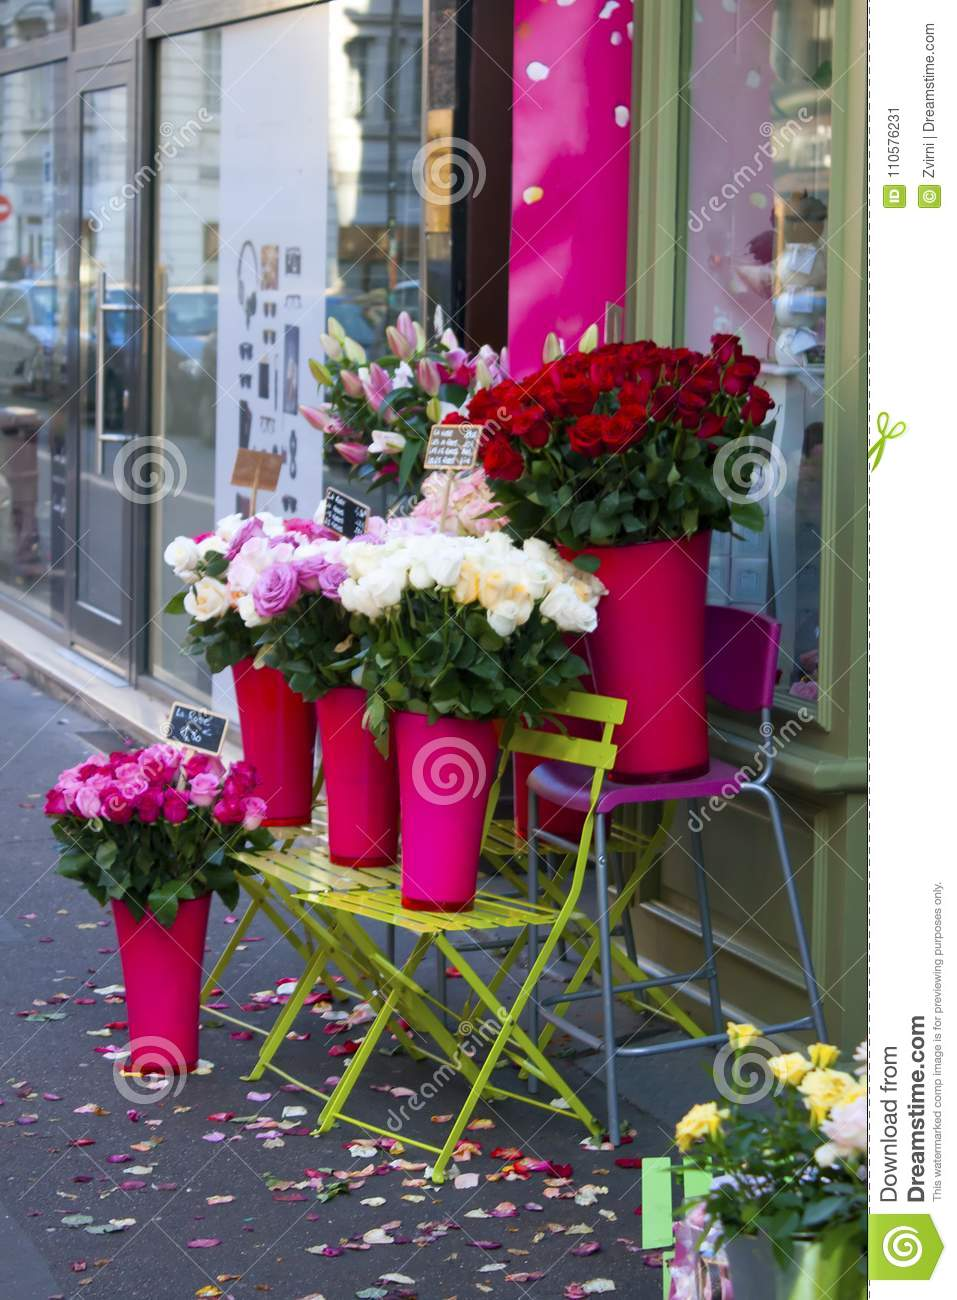 Roses for sale on the sidewalk